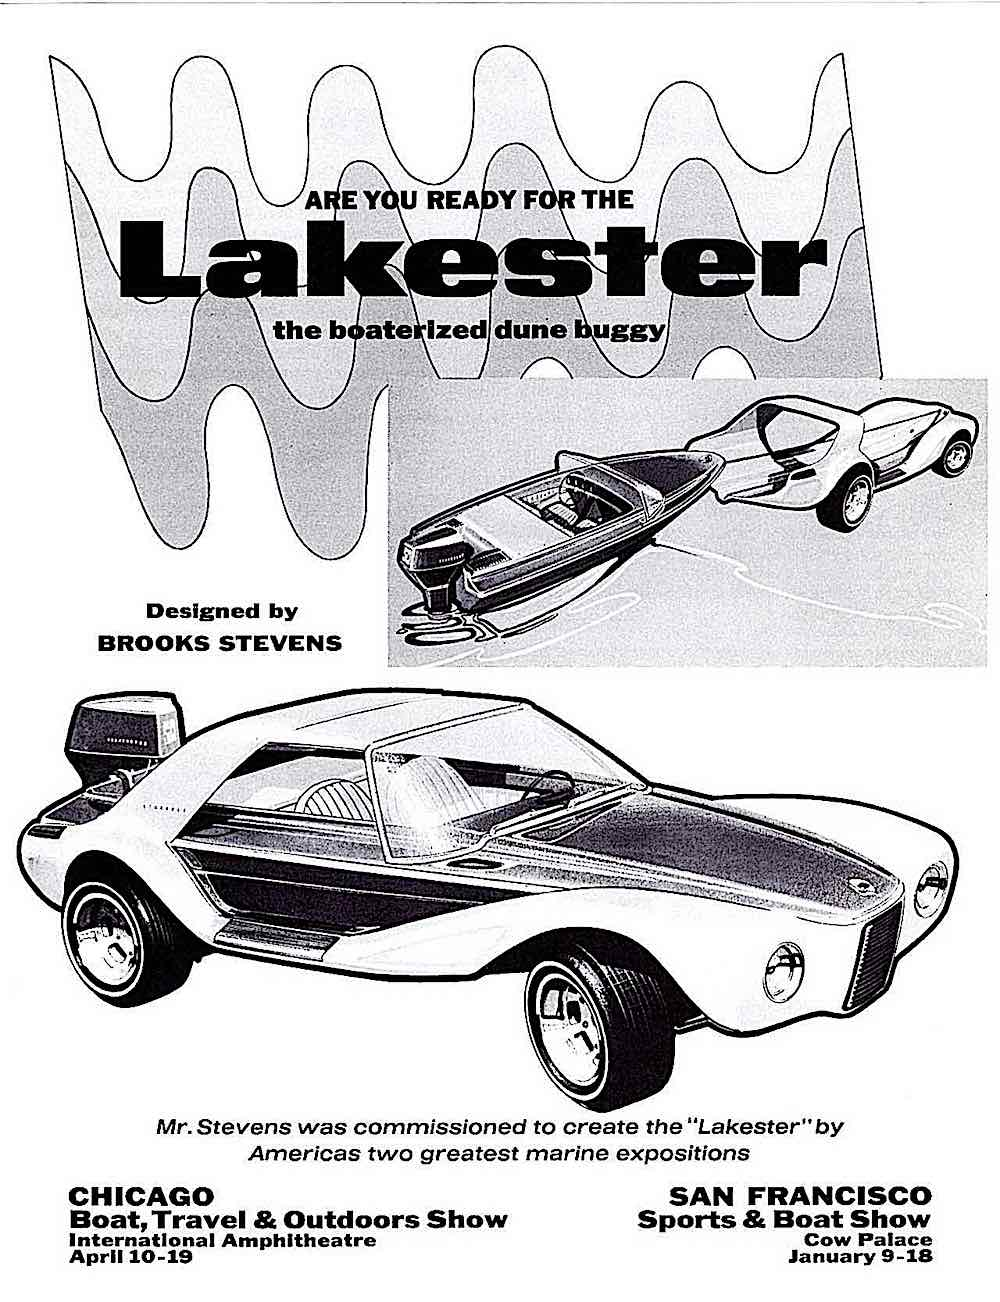 a Brooks Stevens 1970 Lakester combination boat and dune buggy